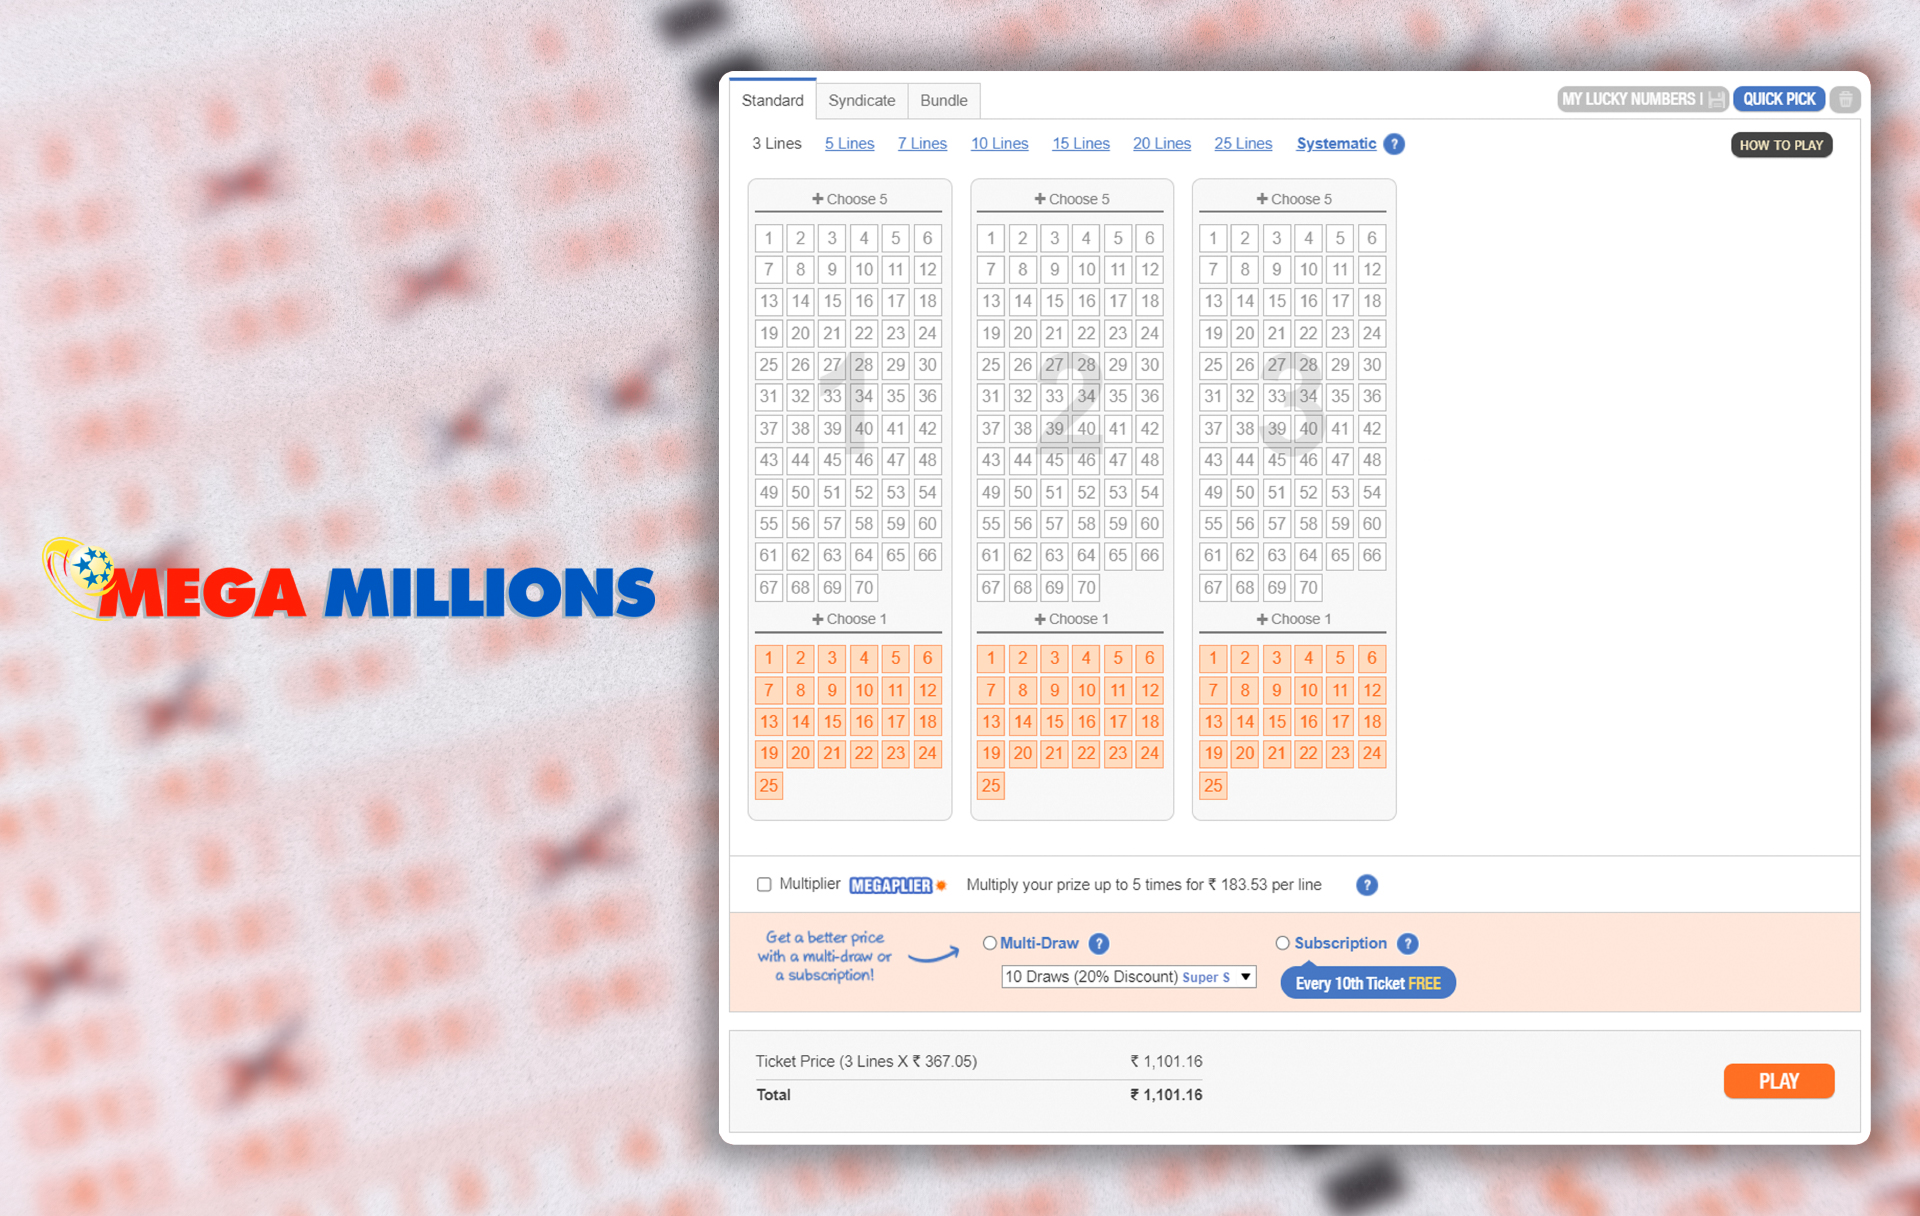 MegaMillions is an American lottery with a jackpot from 12 million dollars.